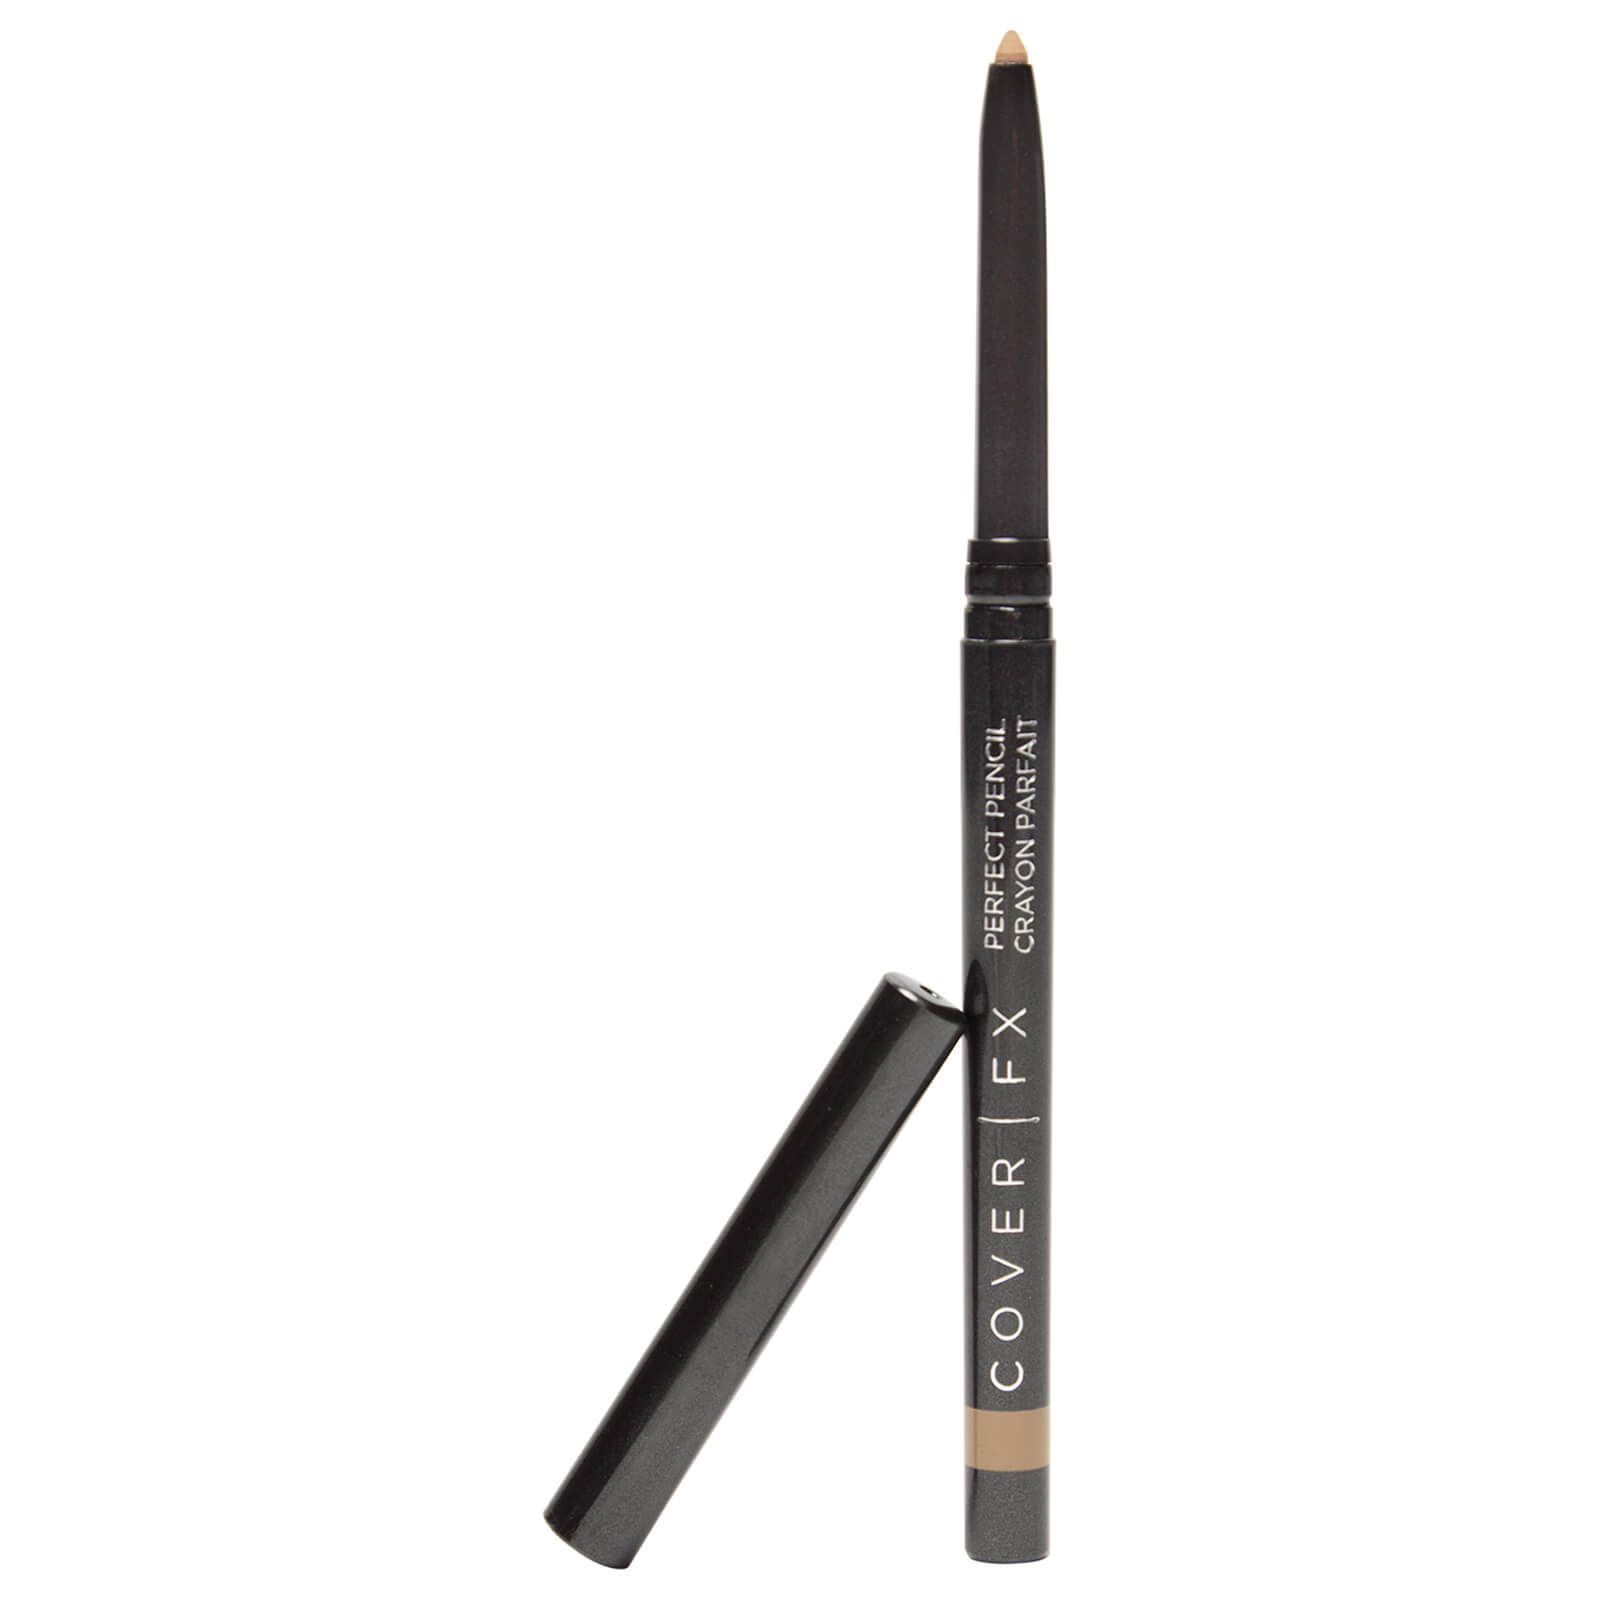 Cover FX Perfect Pencil Concealer in G-Medium